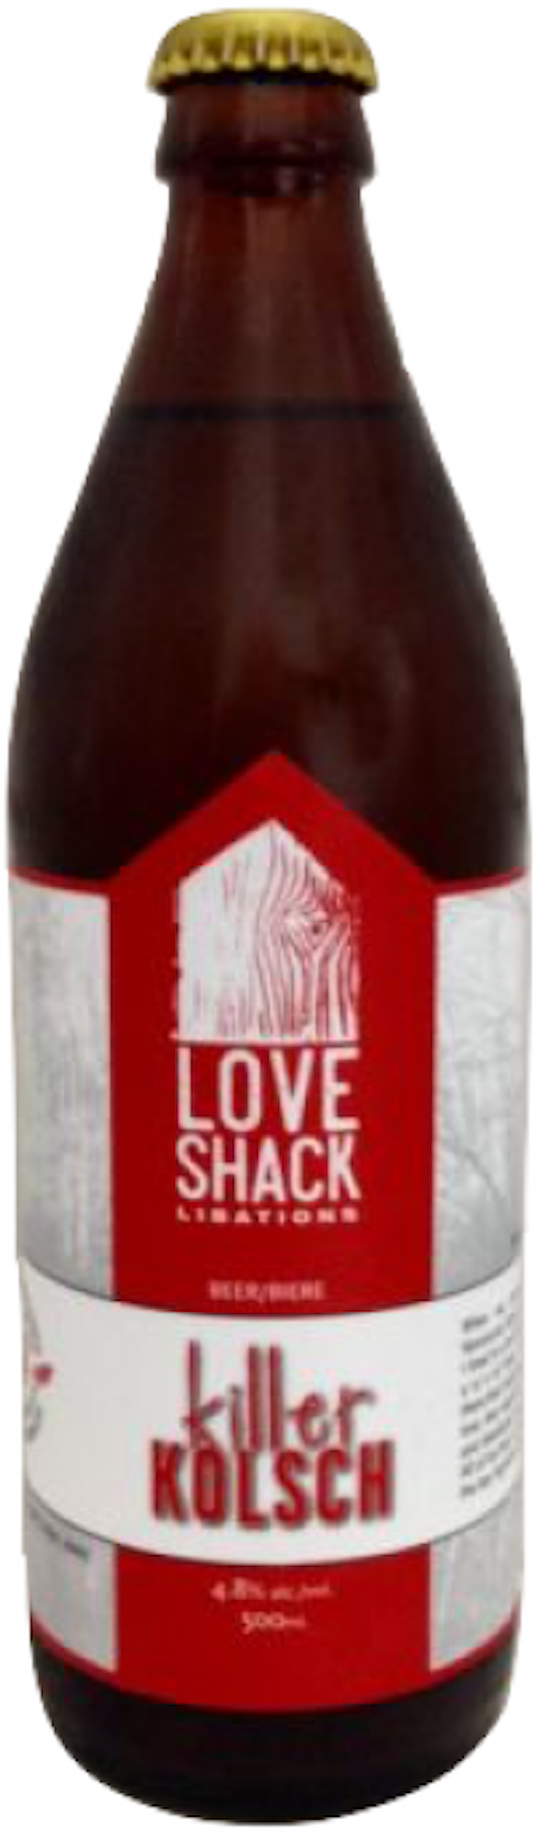 loveshack-libations-killer-kolsch_1518113393